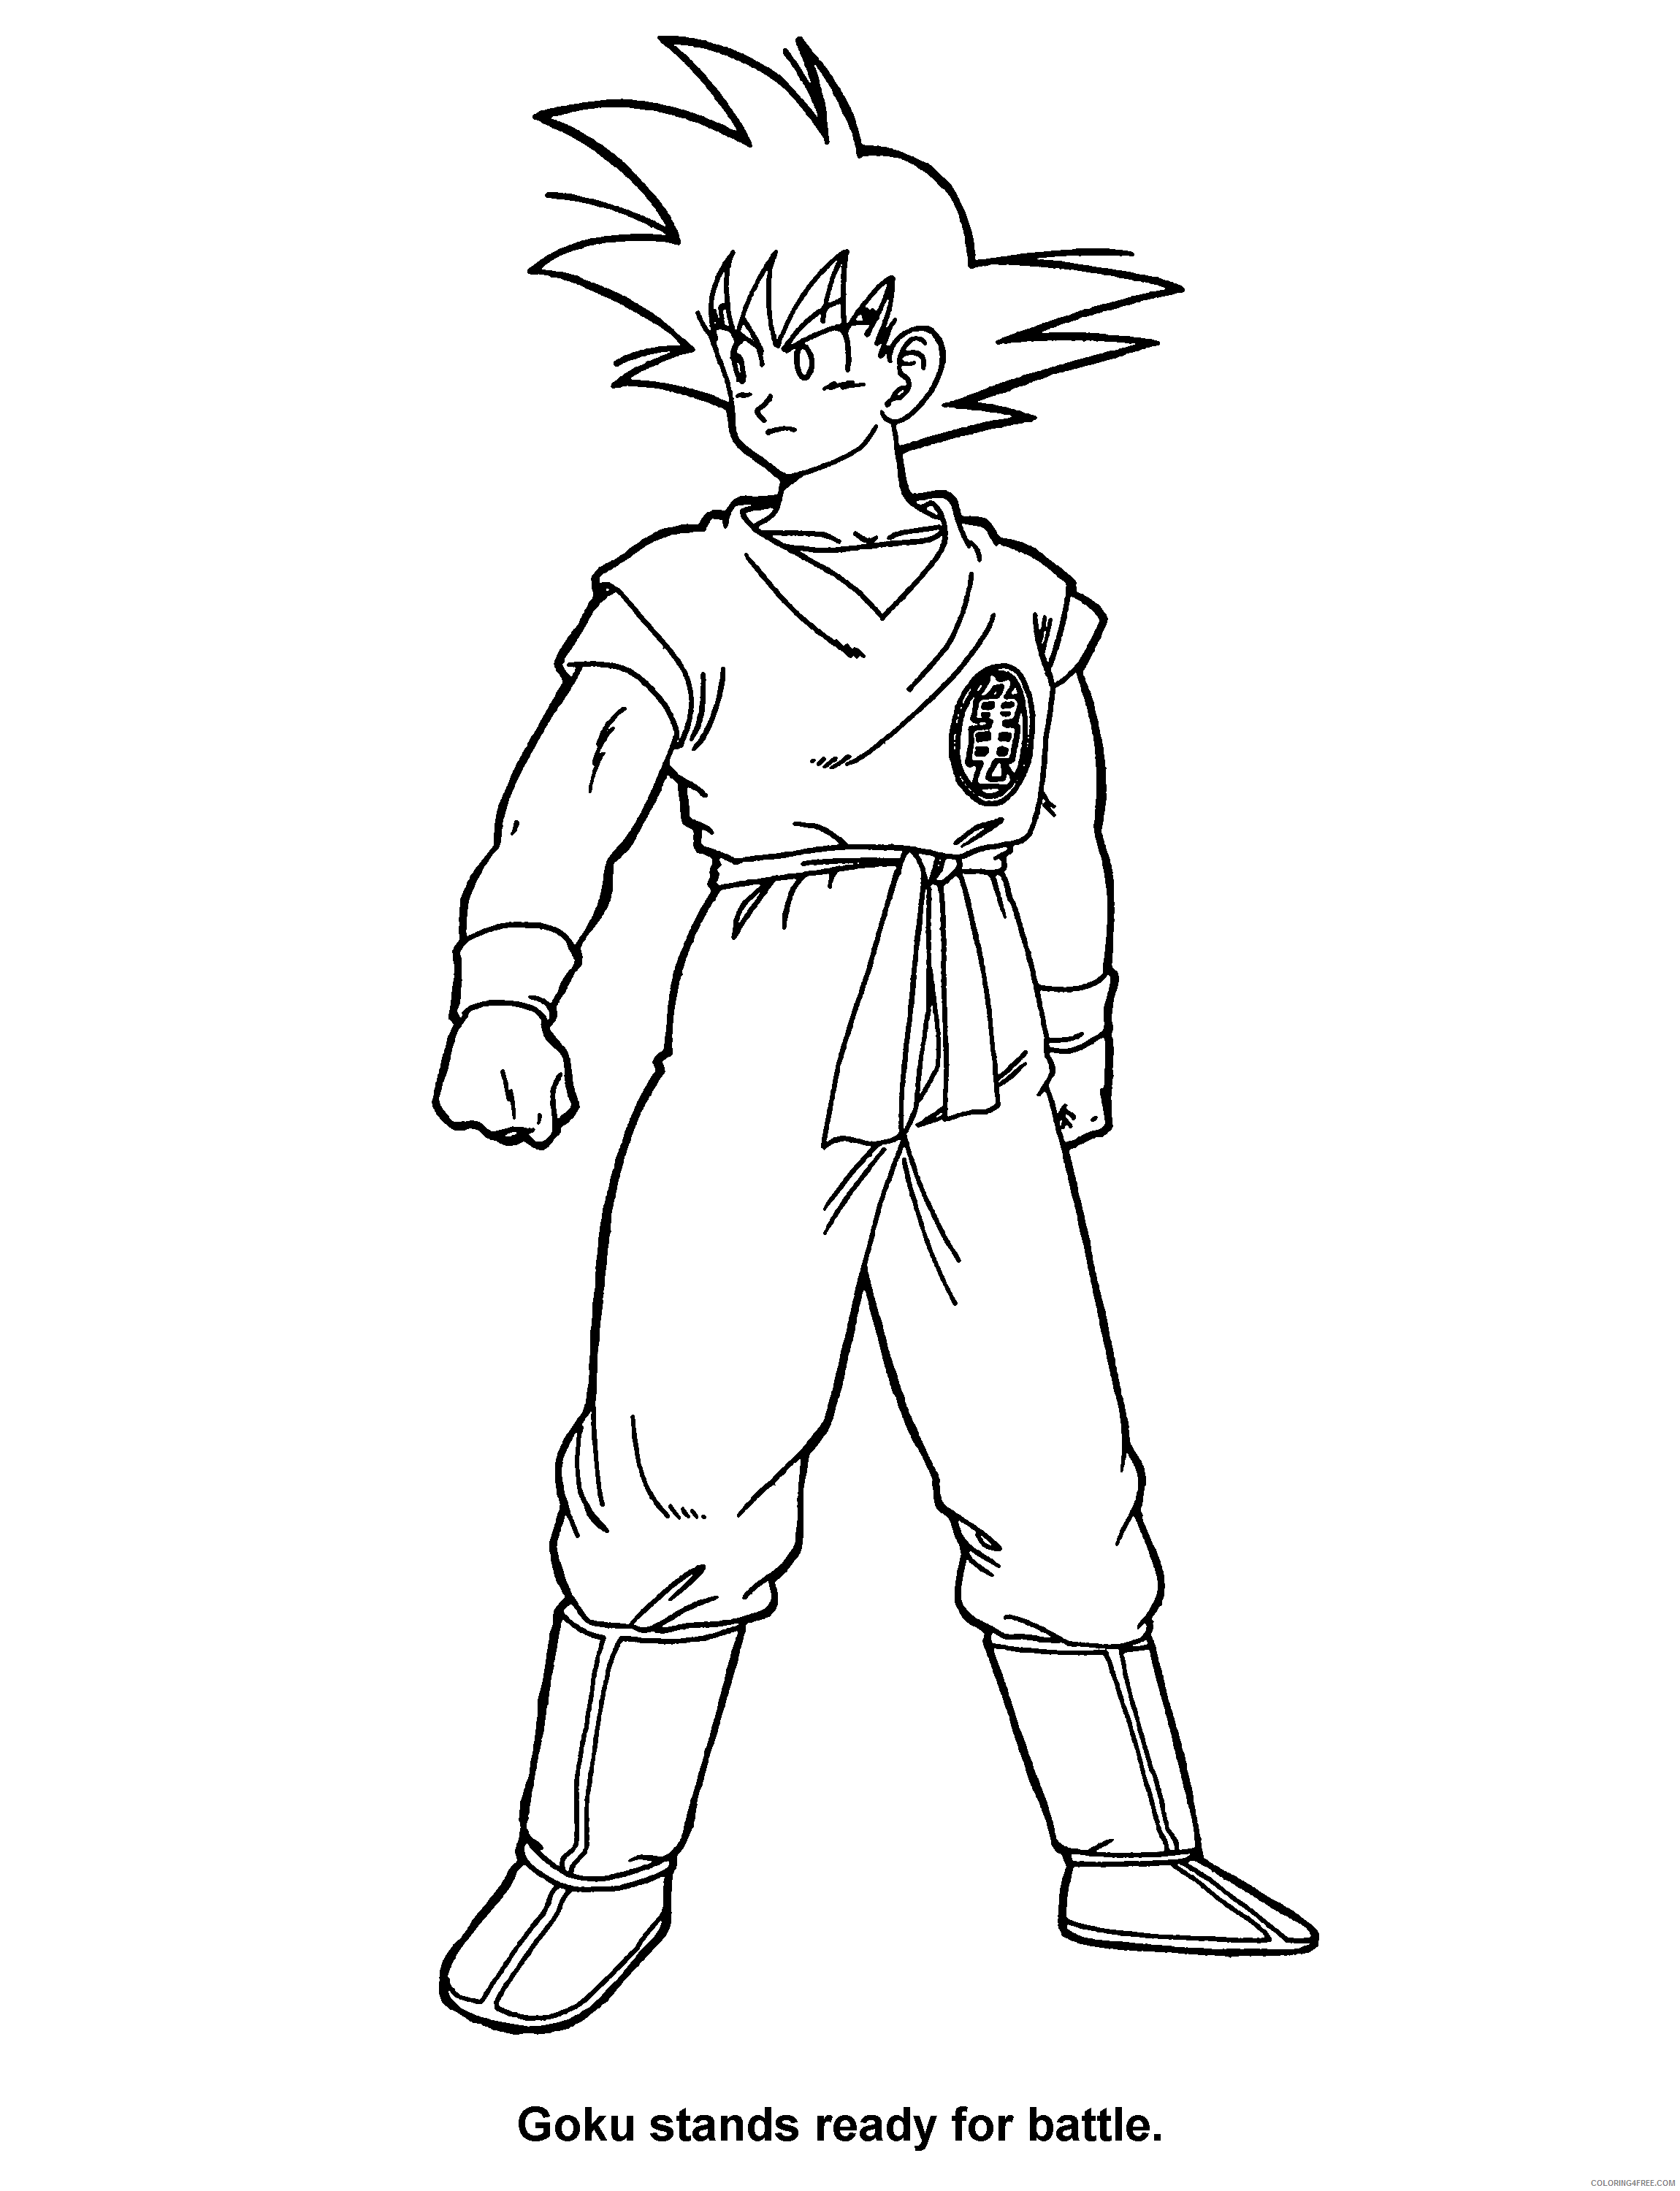 016 dragon ball z goku stands ready for battle Printable Coloring4free